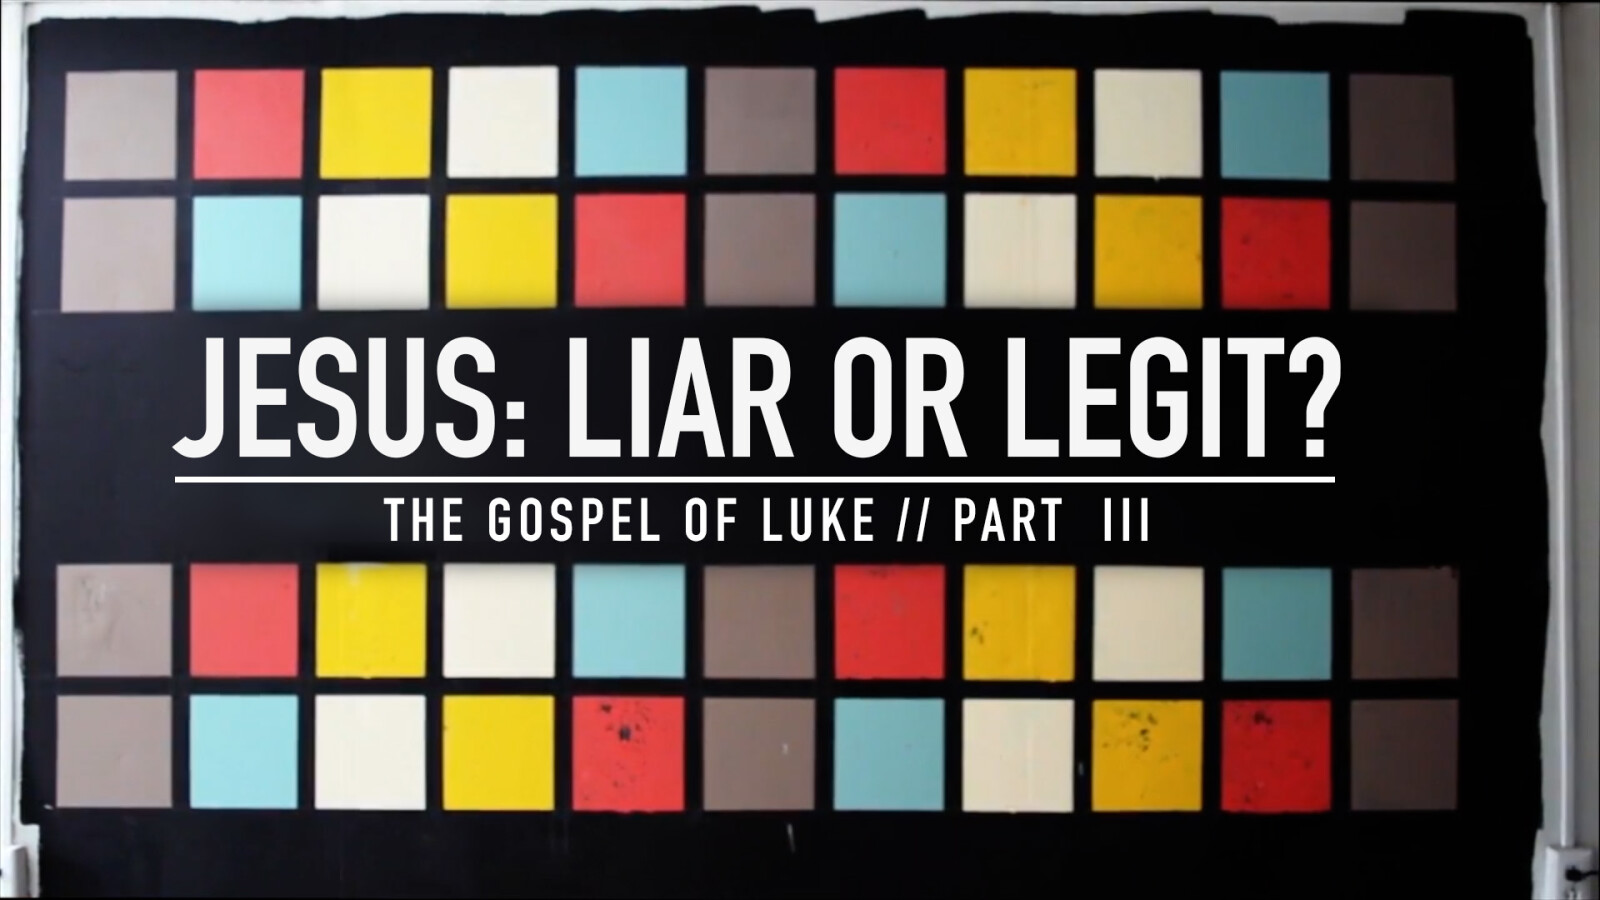 The Gospel of Luke, part 3: Jesus: Liar or Legit?